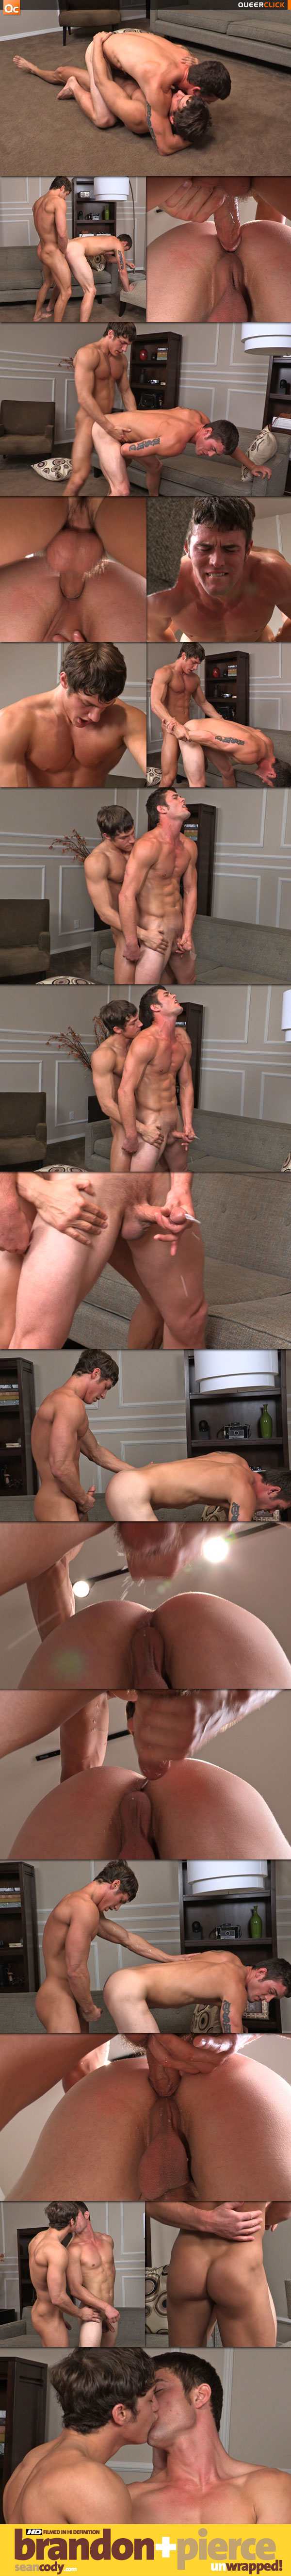 Sean Cody: Brandon and Pierce Unwrapped!